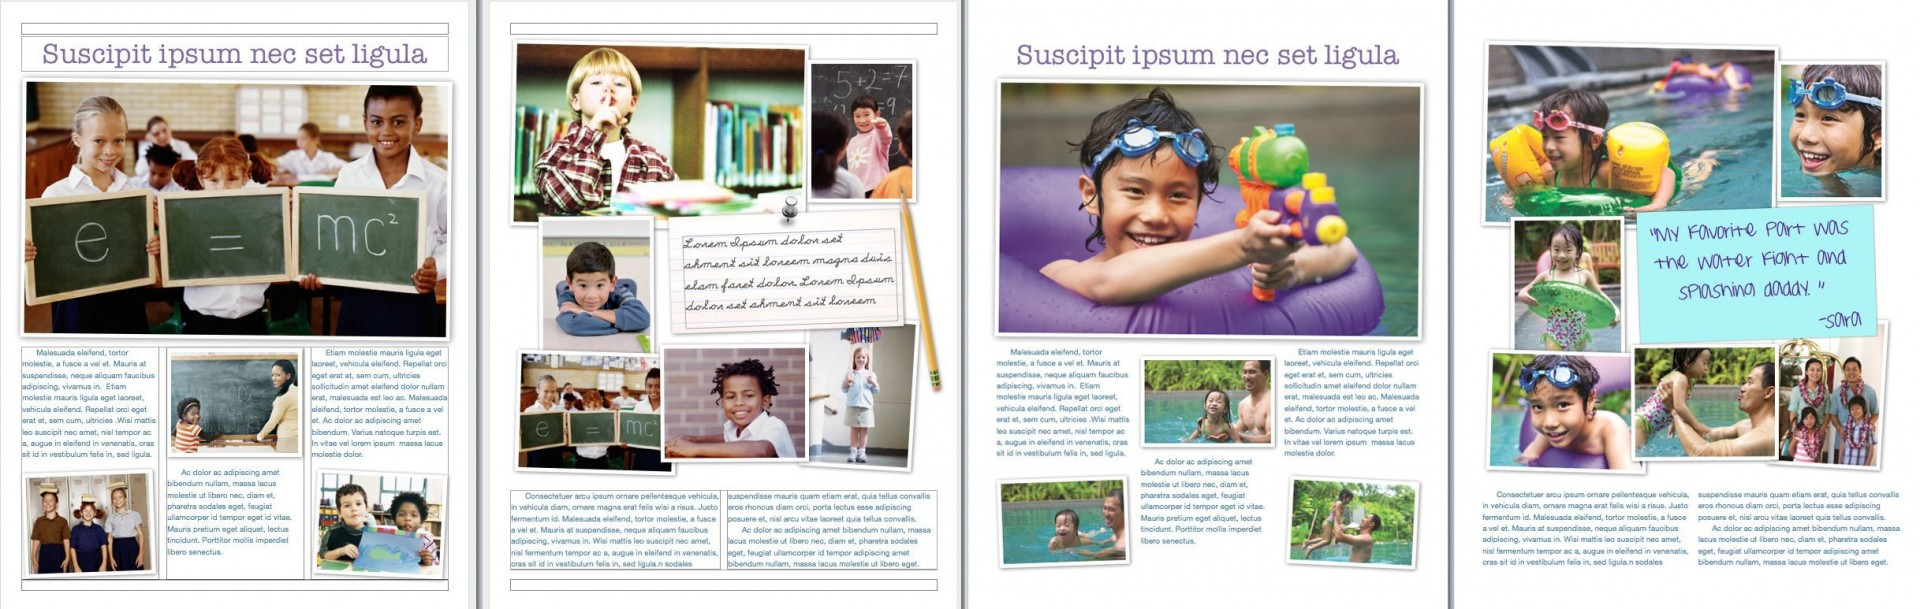 005 Breathtaking Magazine Template For Microsoft Word Concept  Layout Design Download1920